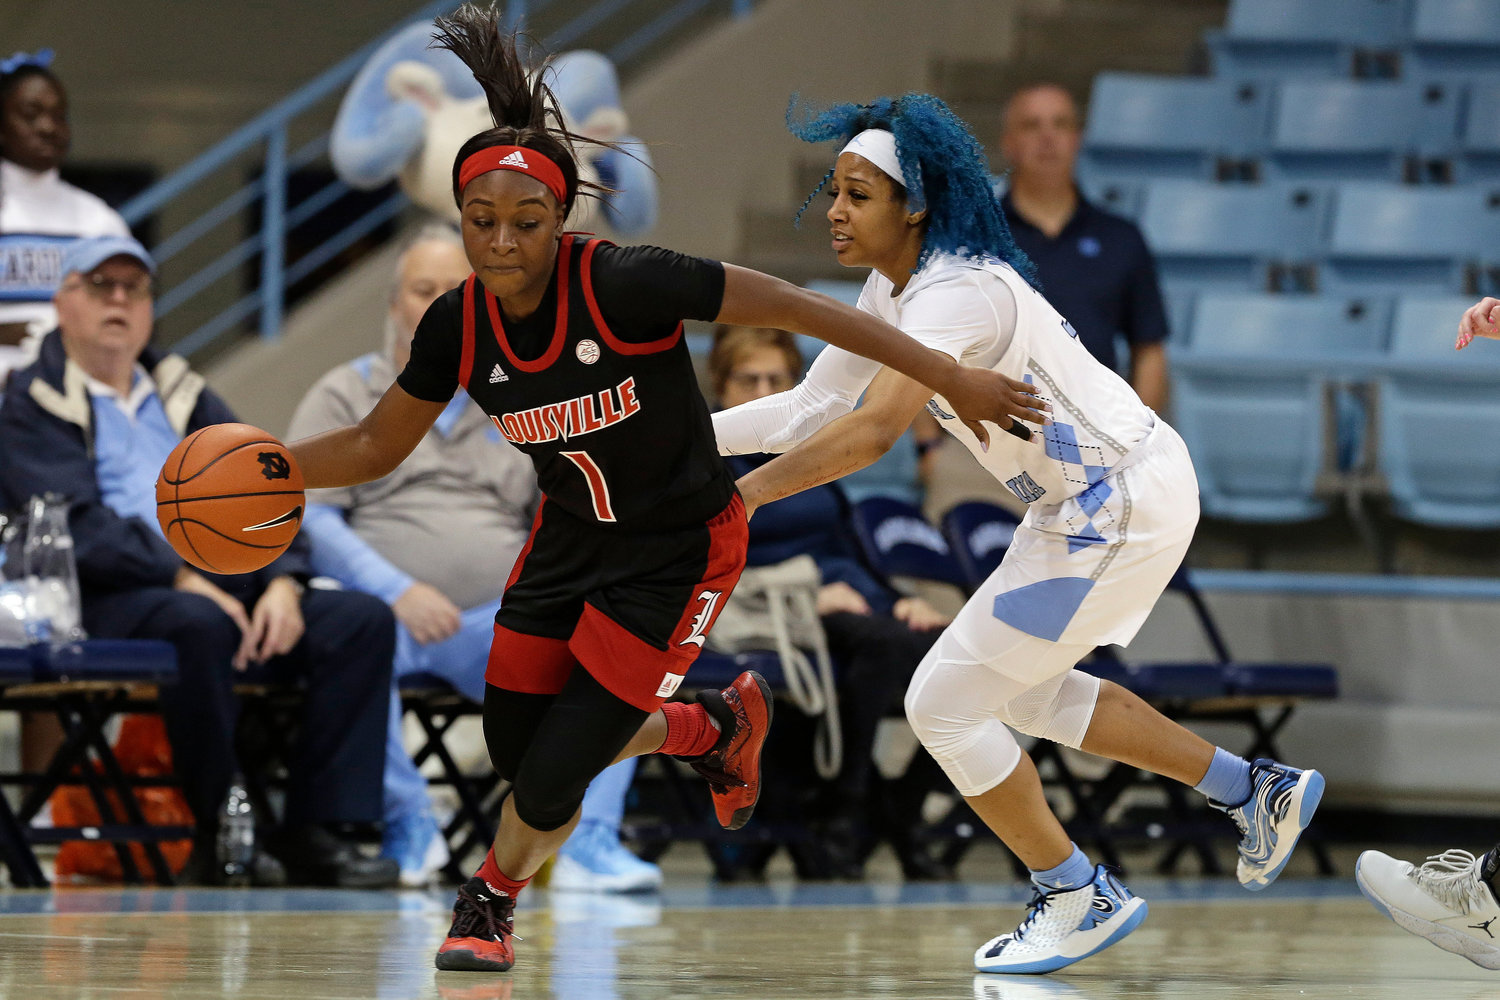 Louisville guard Dana Evans (1) dribbles while North Carolina guard Madinah Muhammad defends during the second half of an NCAA college basketball game in Chapel Hill, N.C., Sunday, Jan. 19, 2020. (AP Photo/Gerry Broome)